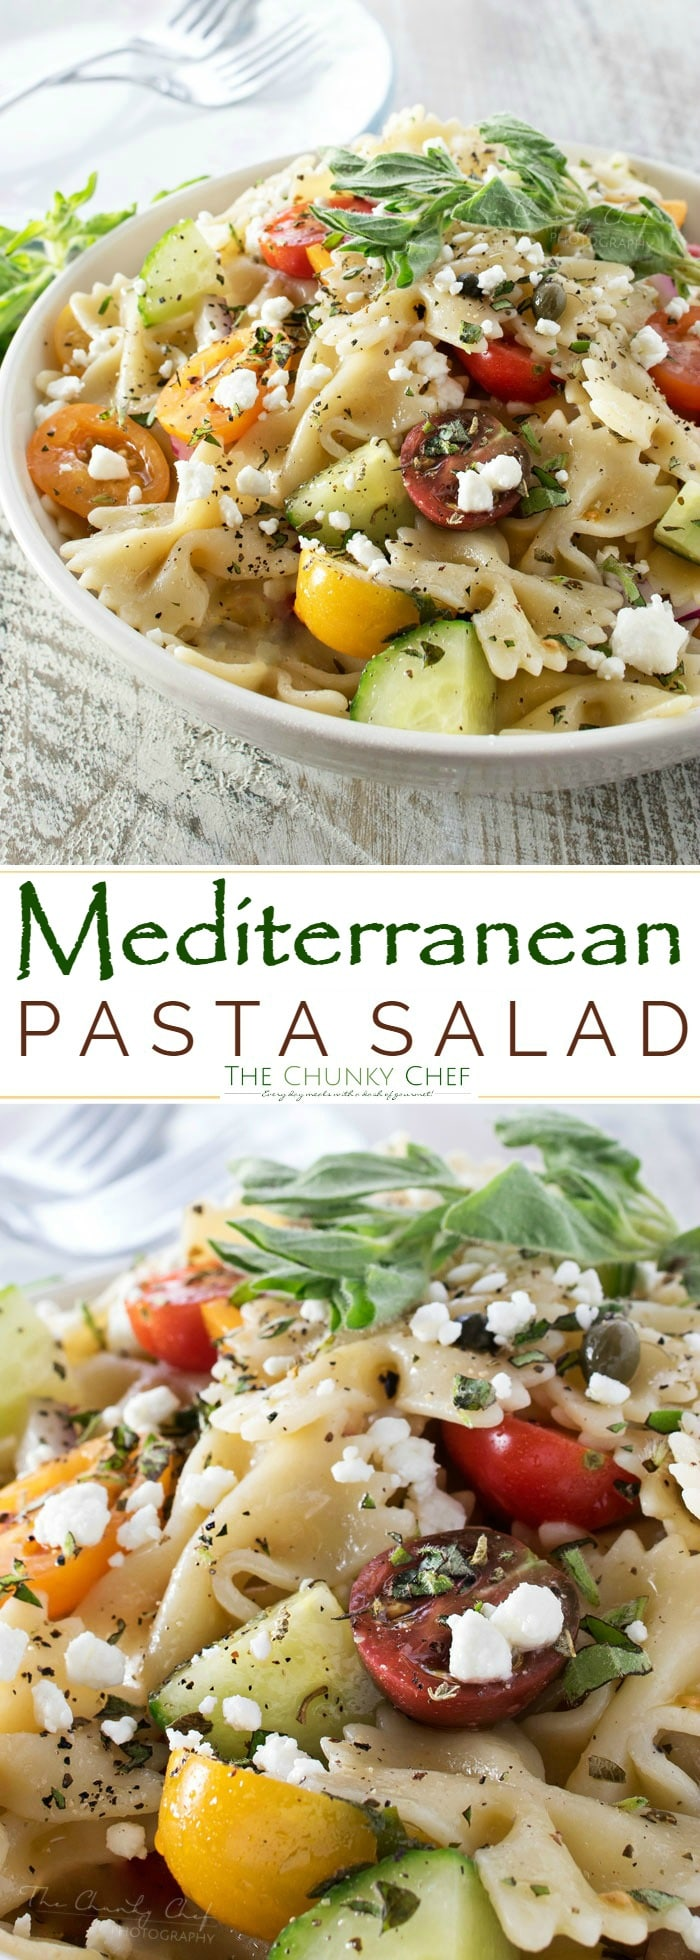 Mediterranean Pasta Salad | Step up your pasta salad game with this fresh and colorful Mediterranean pasta salad with red wine and herb dressing! Homemade is always the best! | http://thechunkychef.com